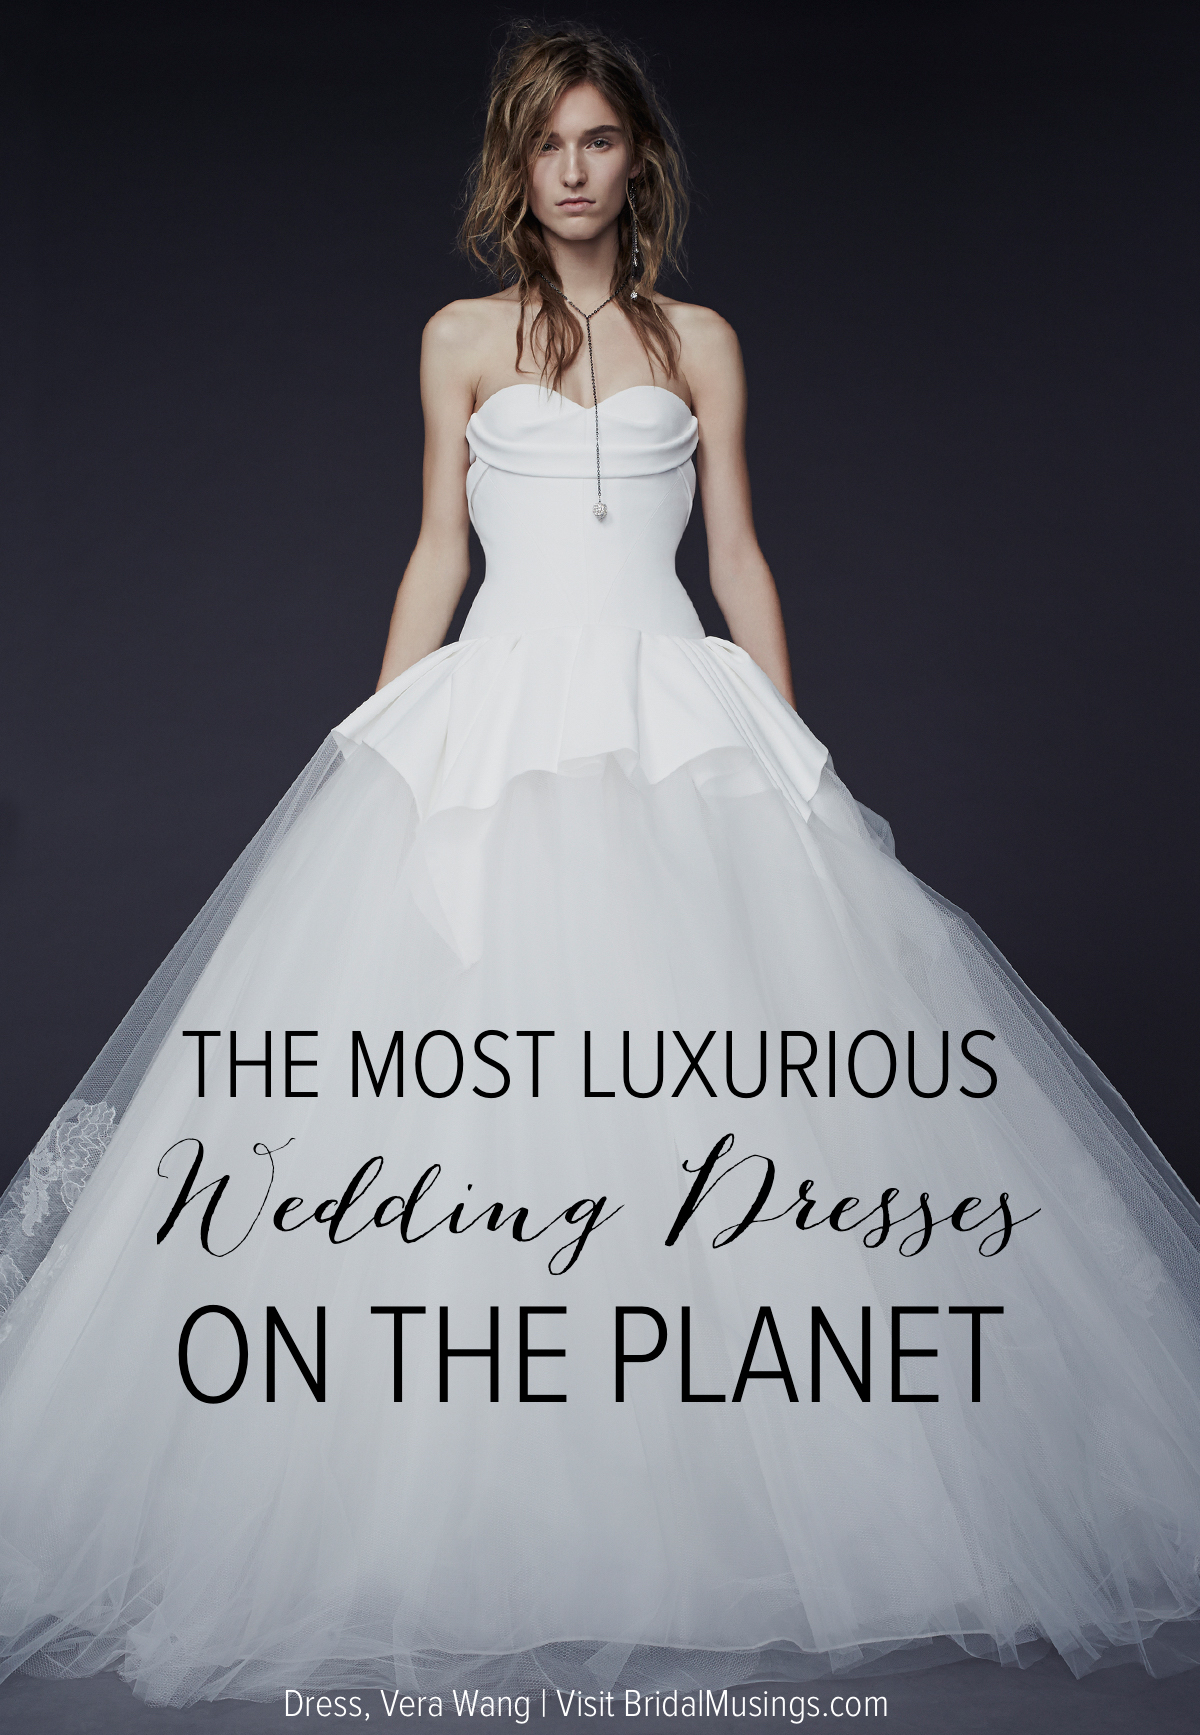 How Much Are Vera Wang Wedding Dresses